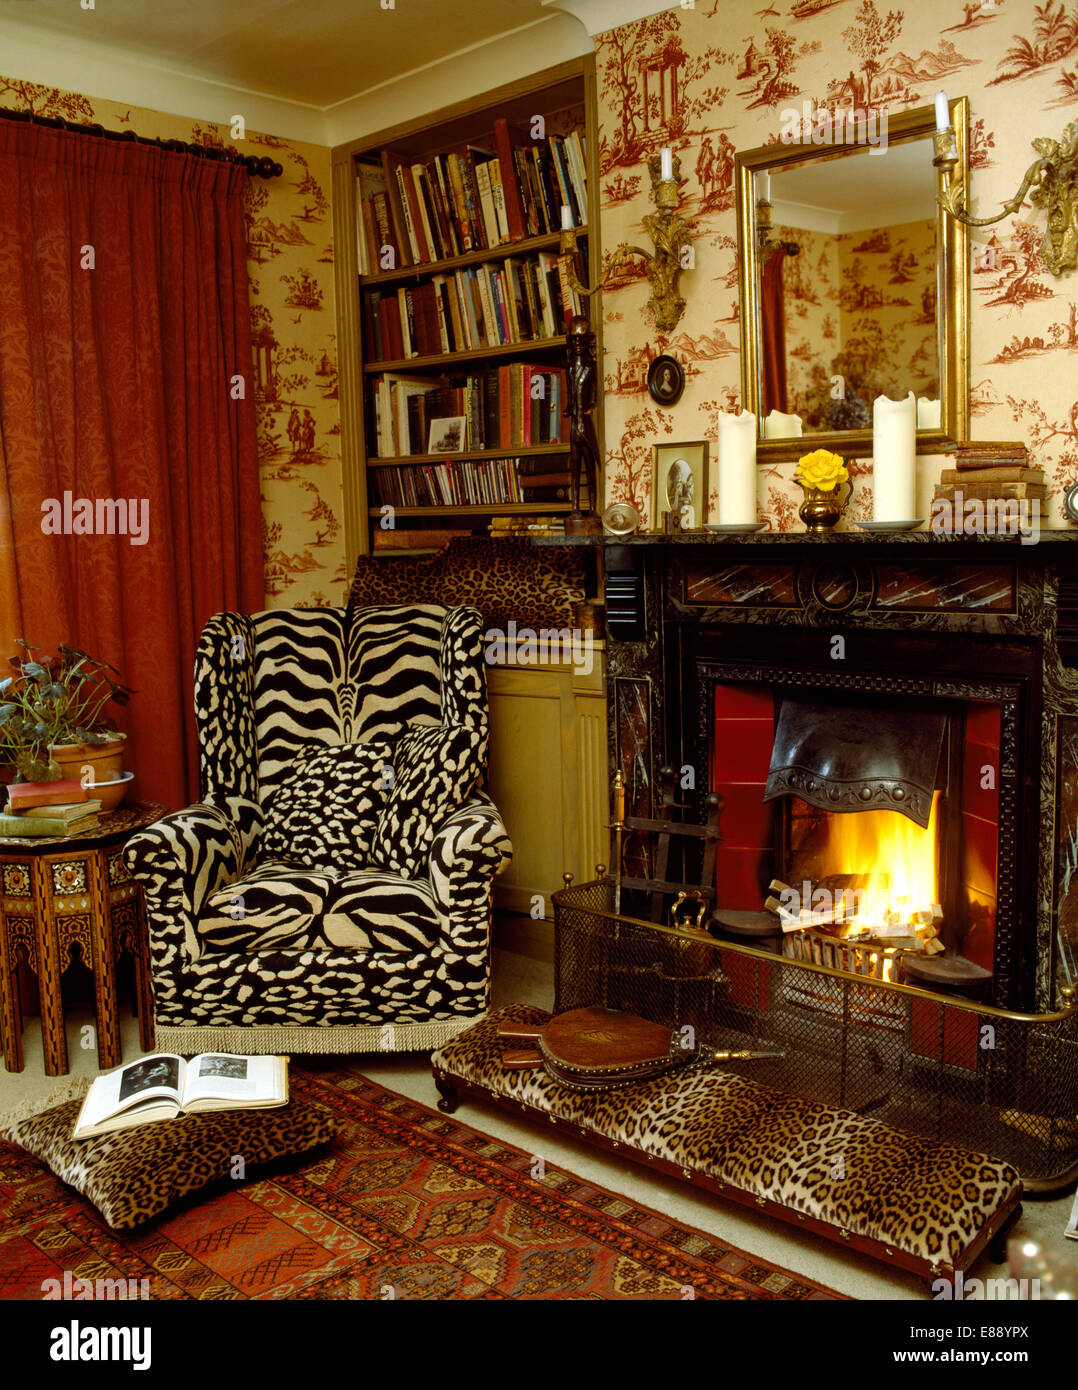 Charmant Tiger Print Wing Chair And Leopard Print Stool Beside Fireplace In Living  Room With Toile De Jouy Wallpaper